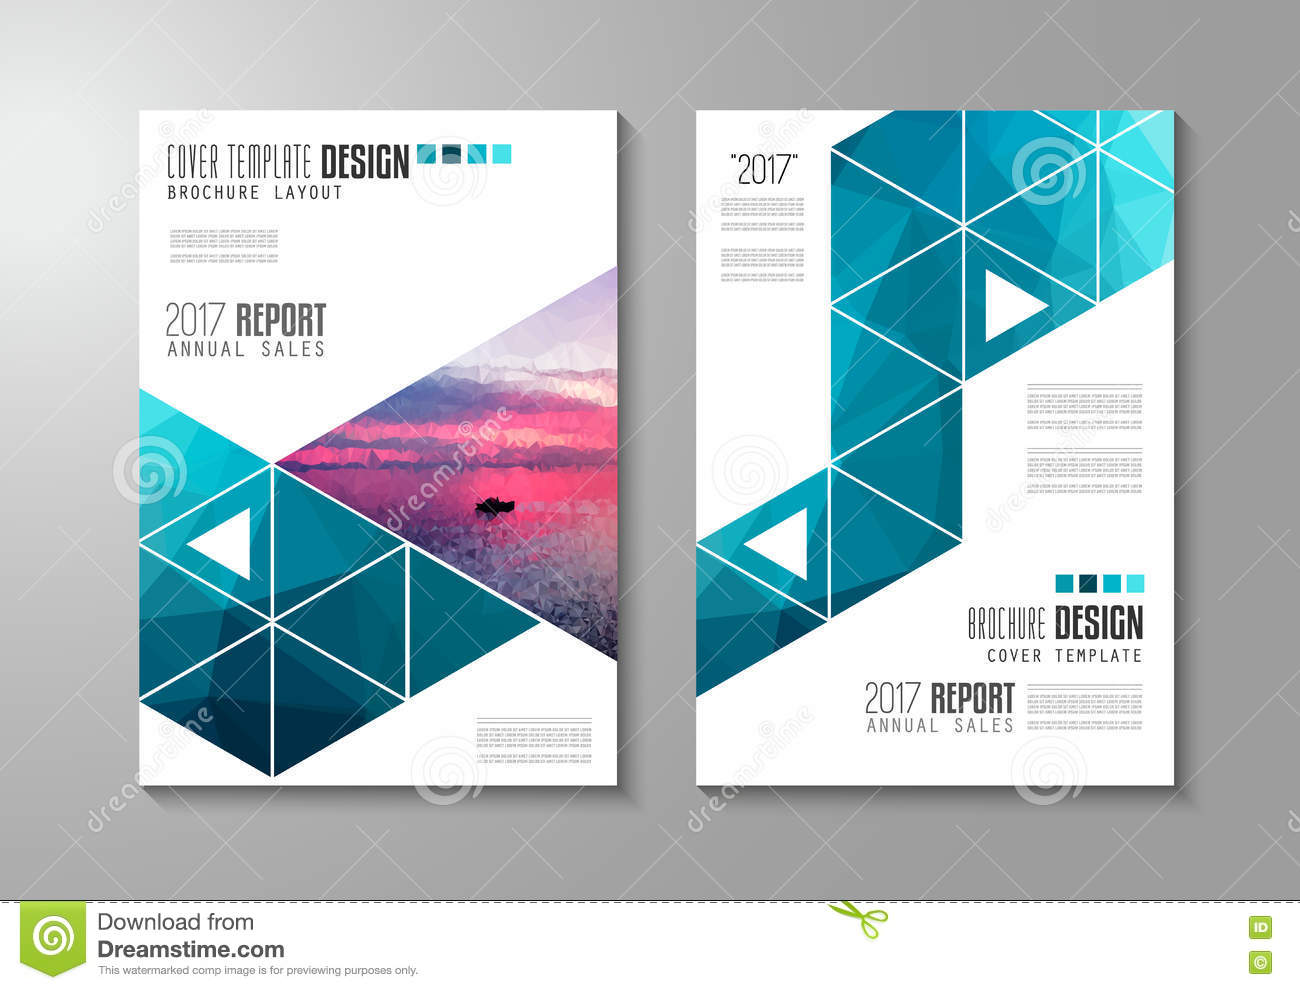 brochure template flyer design or depliant cover for business brochure template flyer design or depliant cover for business